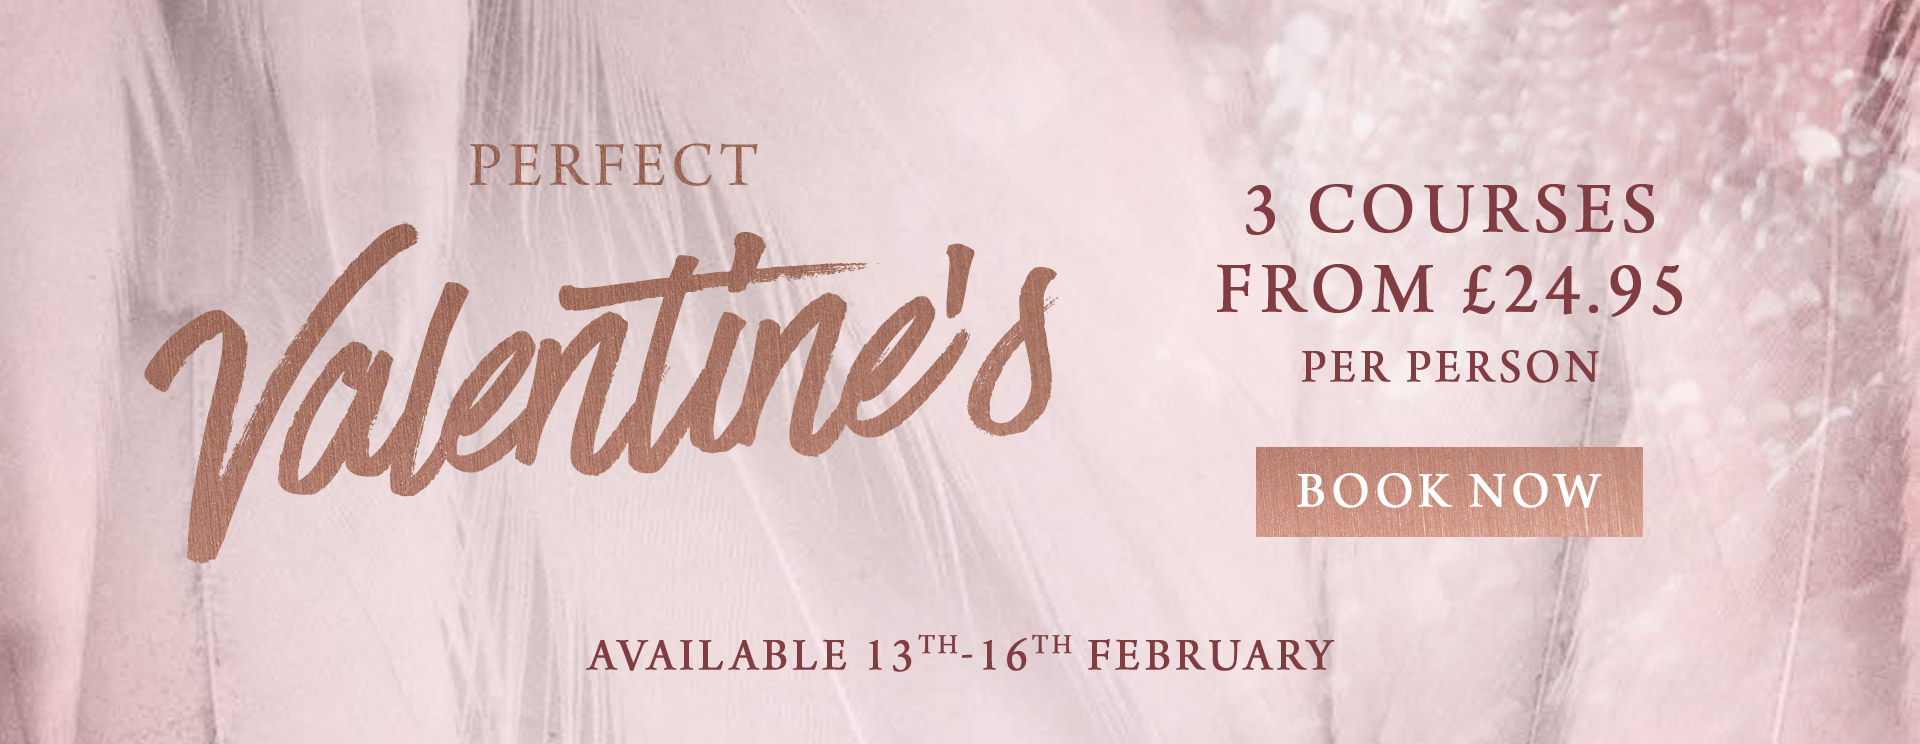 Valentines at The Coombe Cellars